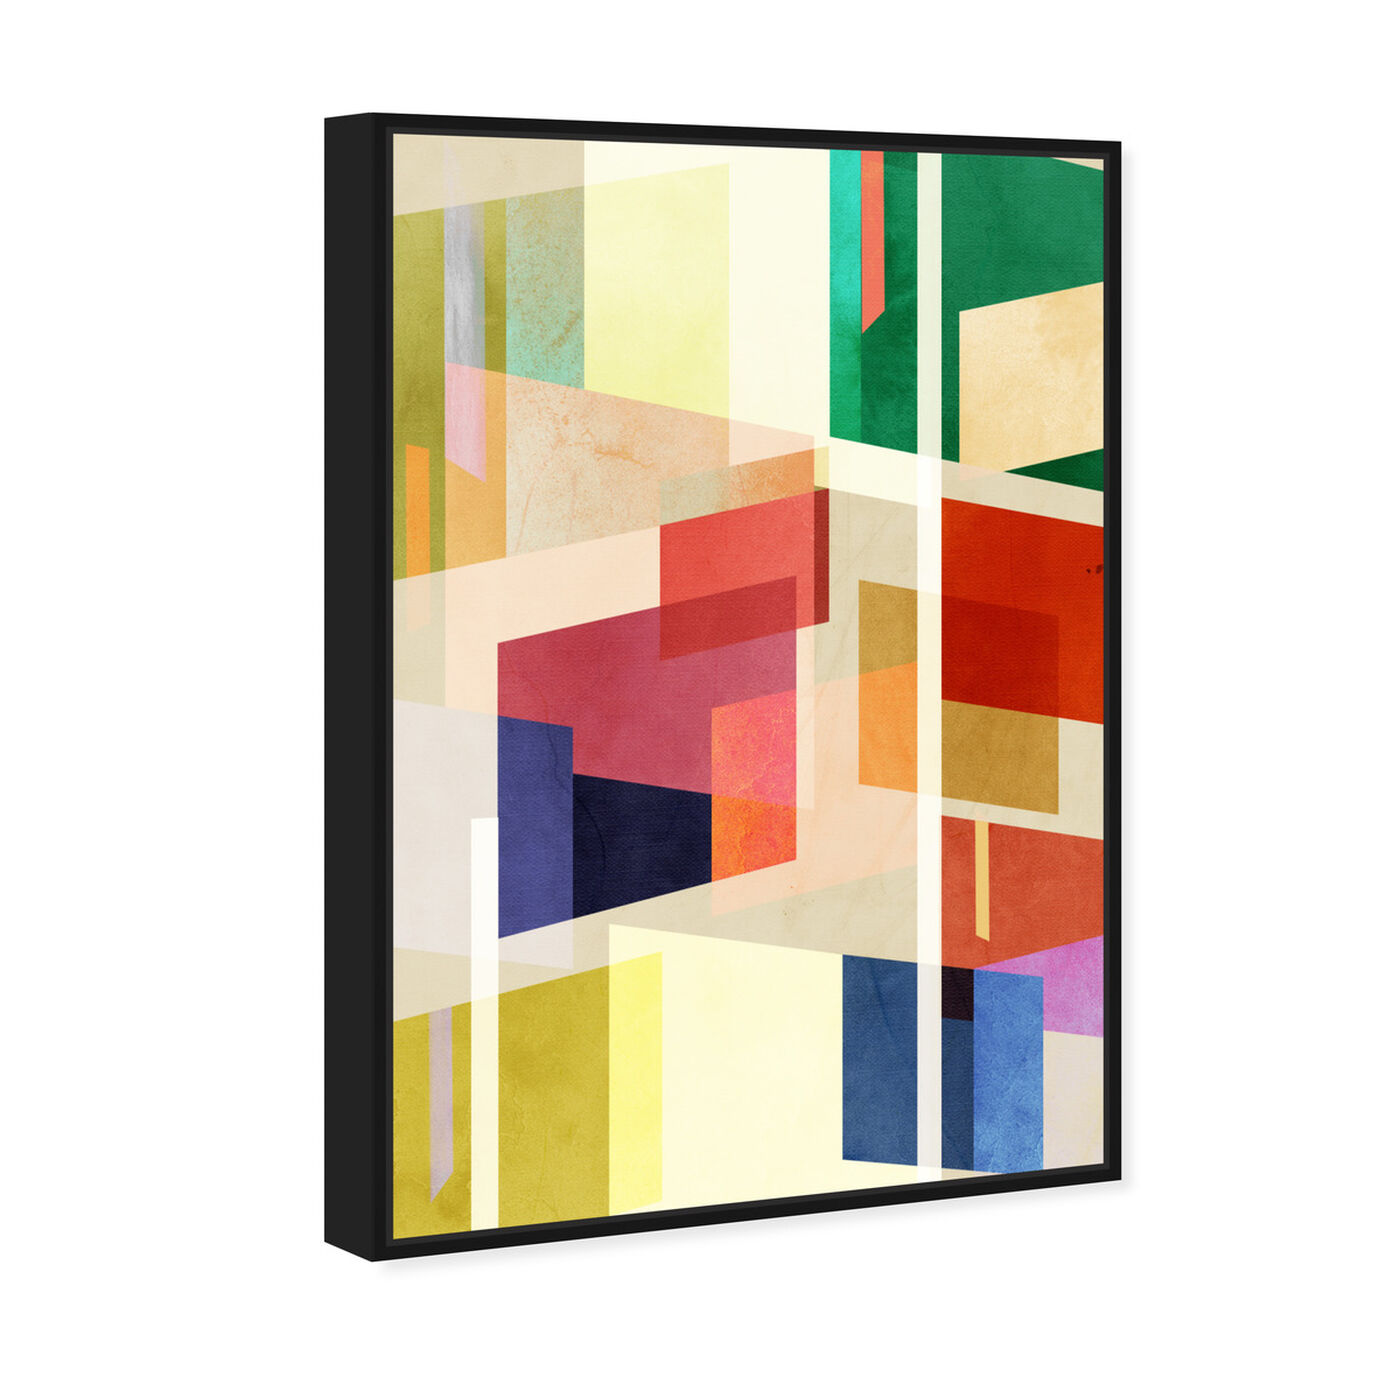 Angled view of Midcentury Square Abstract featuring abstract and geometric art.